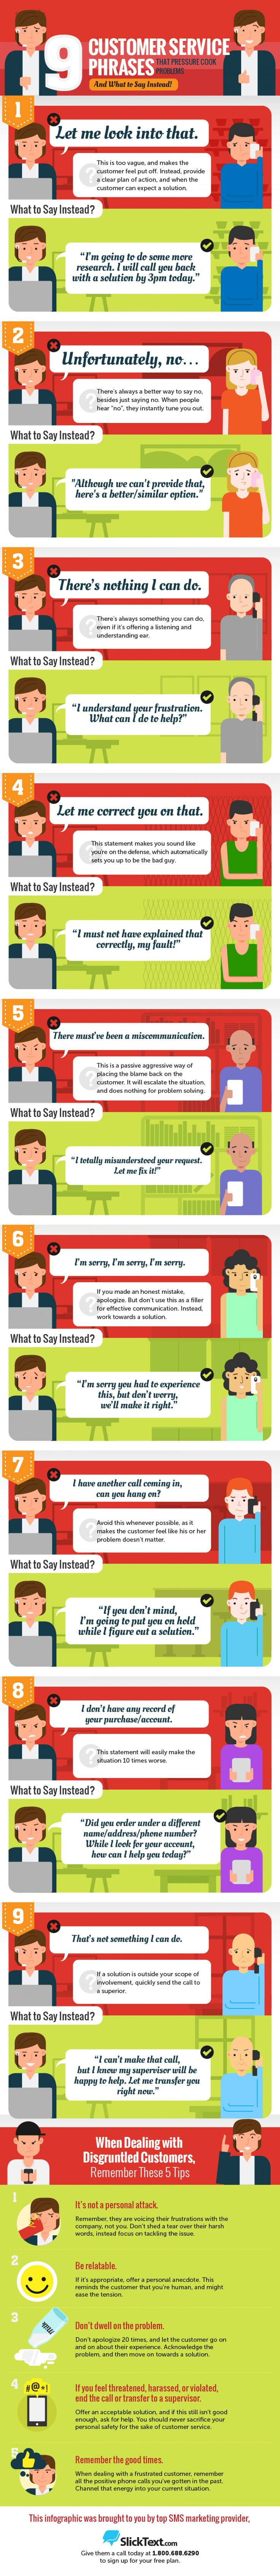 9 Customer Service Phrases that Pressure Cook Problems and What to Say Instead   Infographic